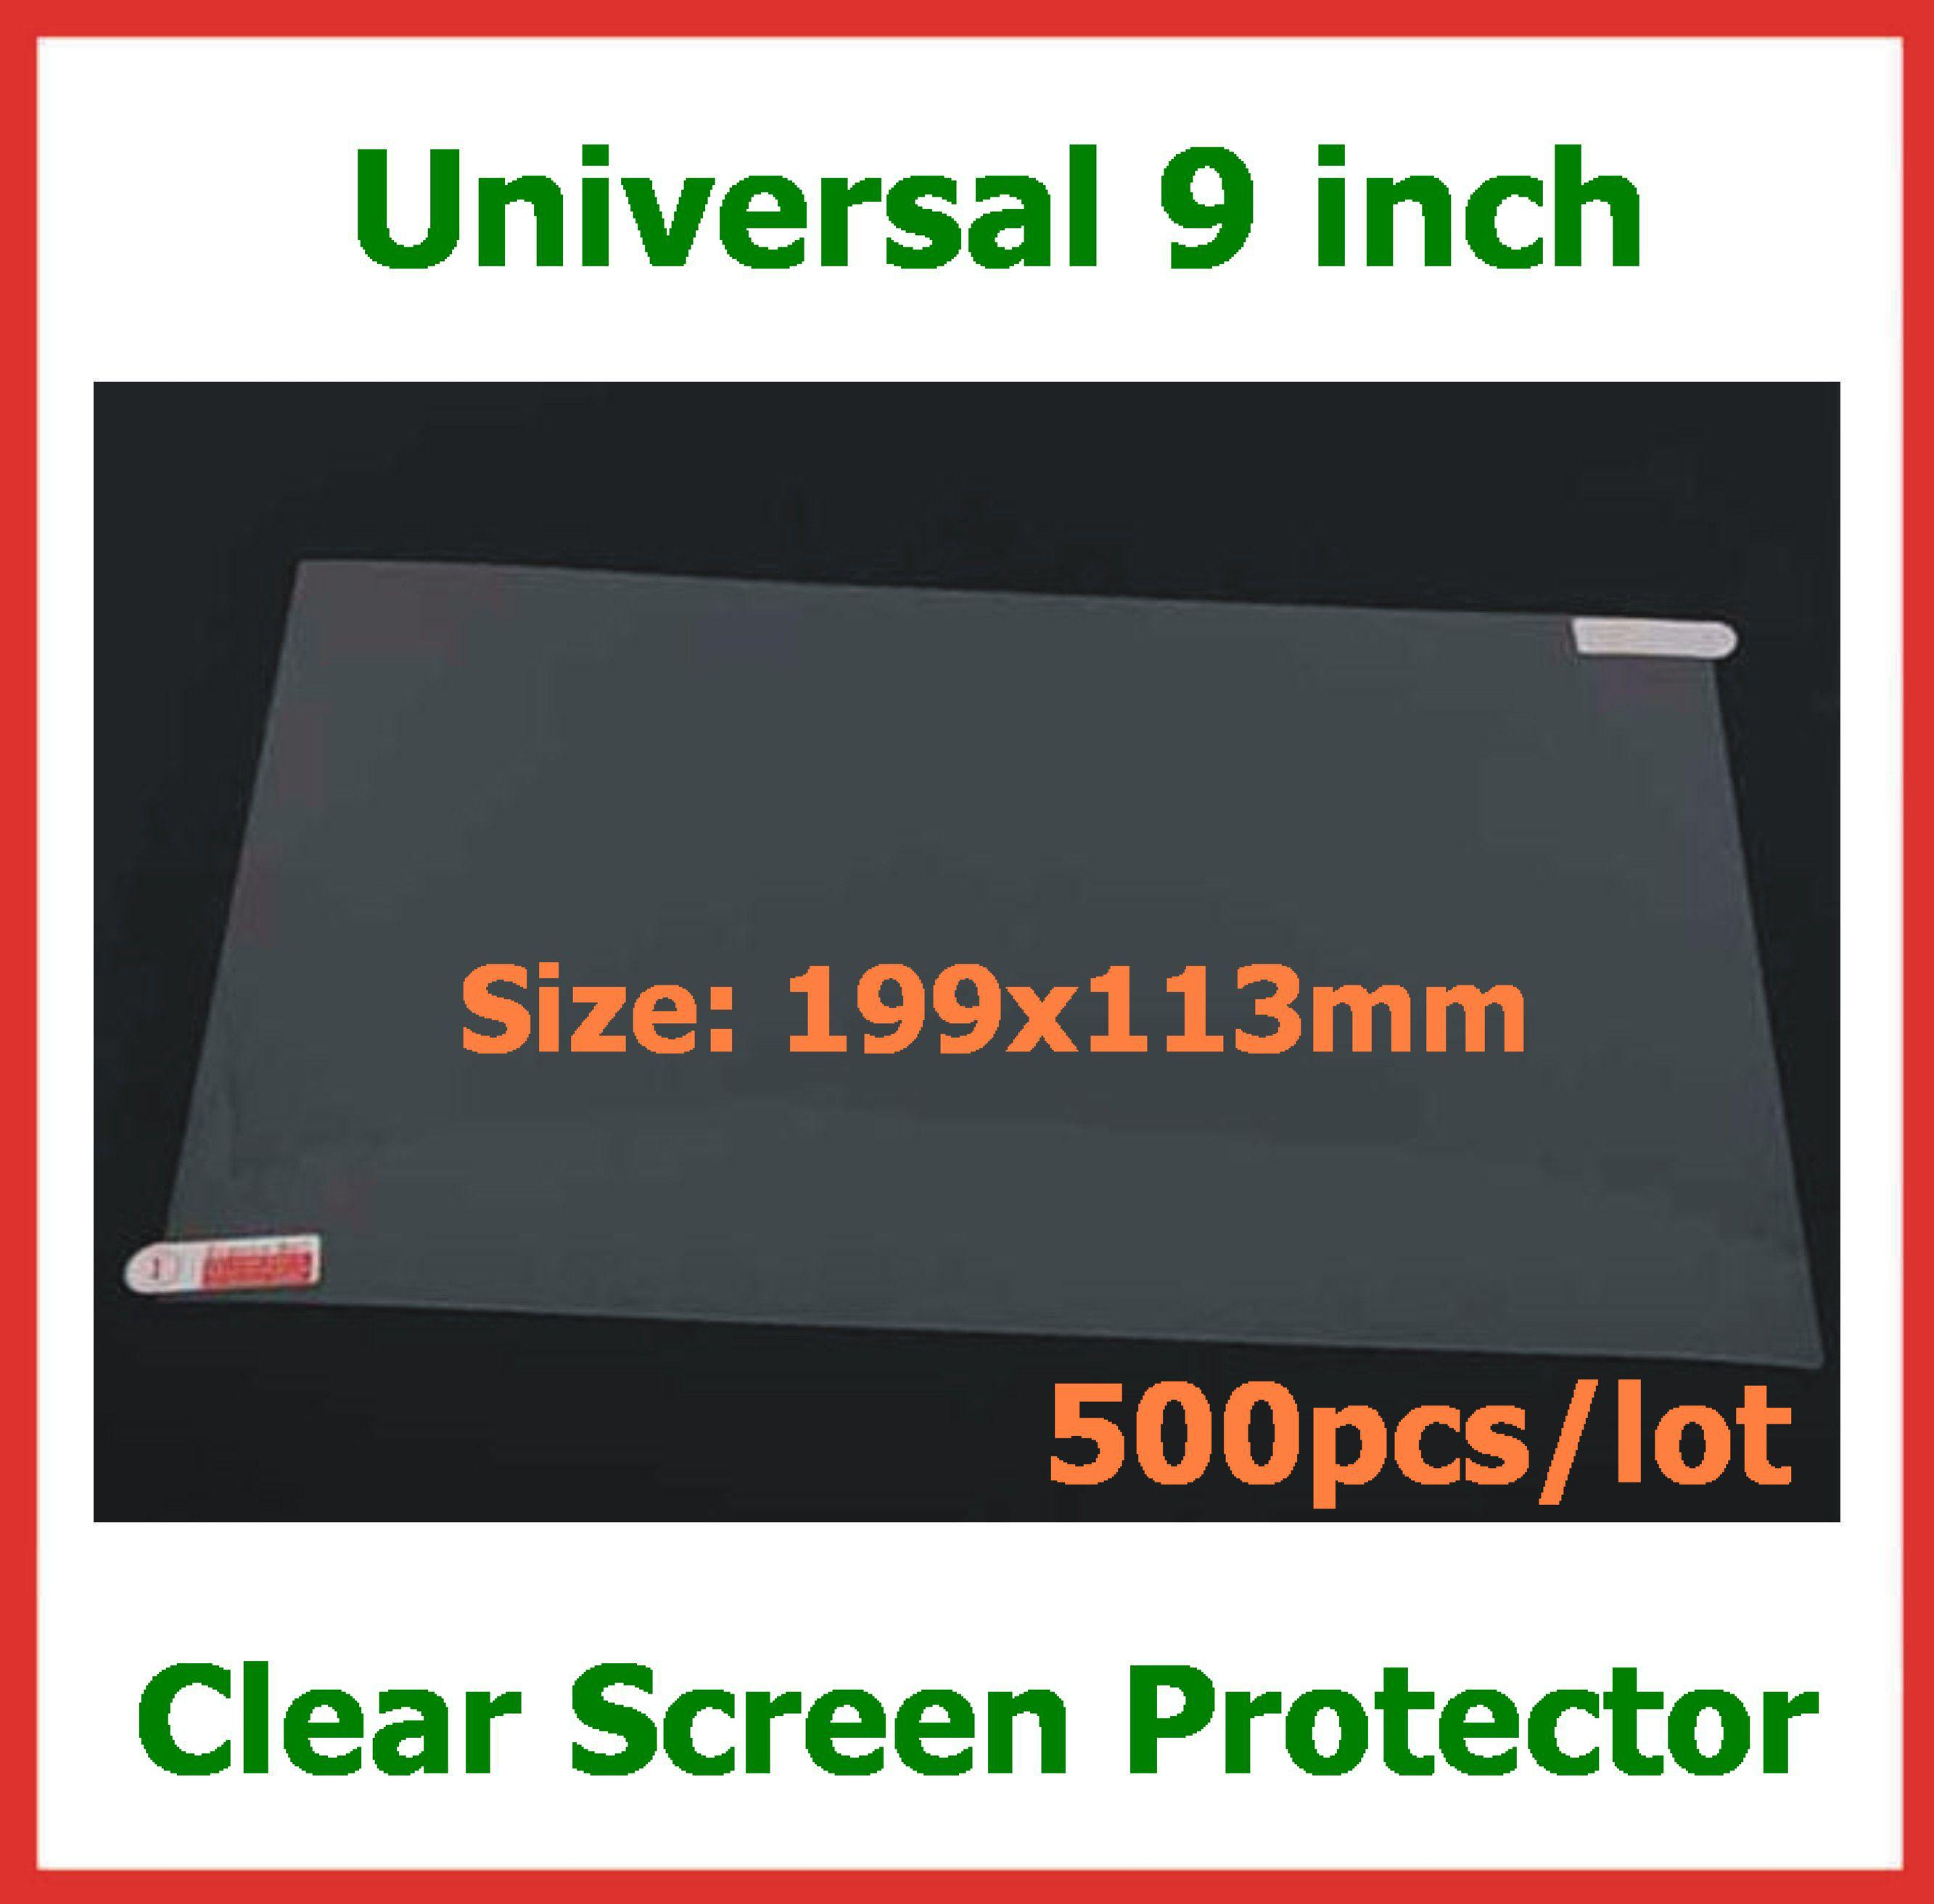 500pcs Universal LCD Screen Protector Guard Film 9 inch NOT Full-Screen Size 199x113mm for Tablet PC GPS Mobile Phone No Retail Packaging